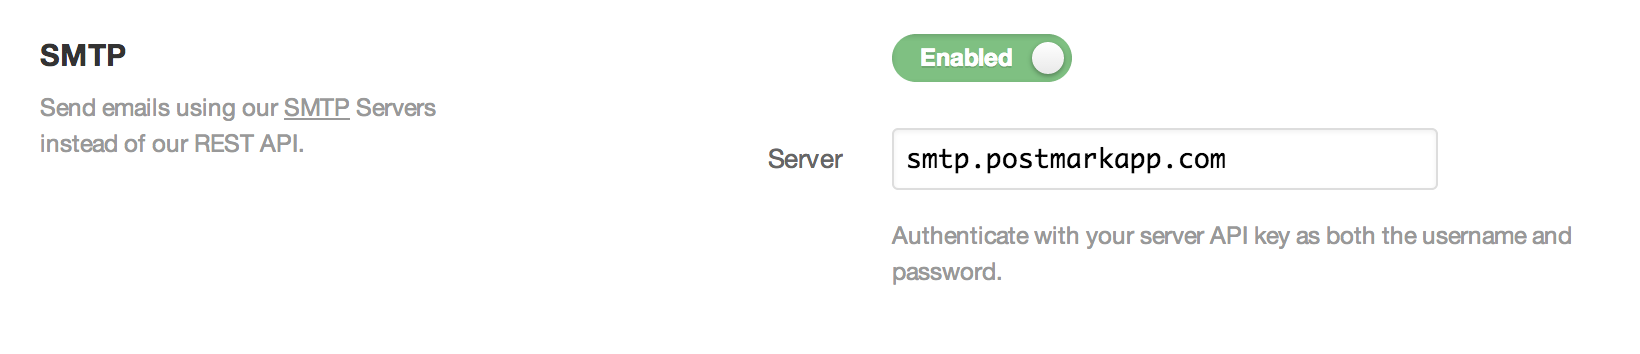 Enable SMTP